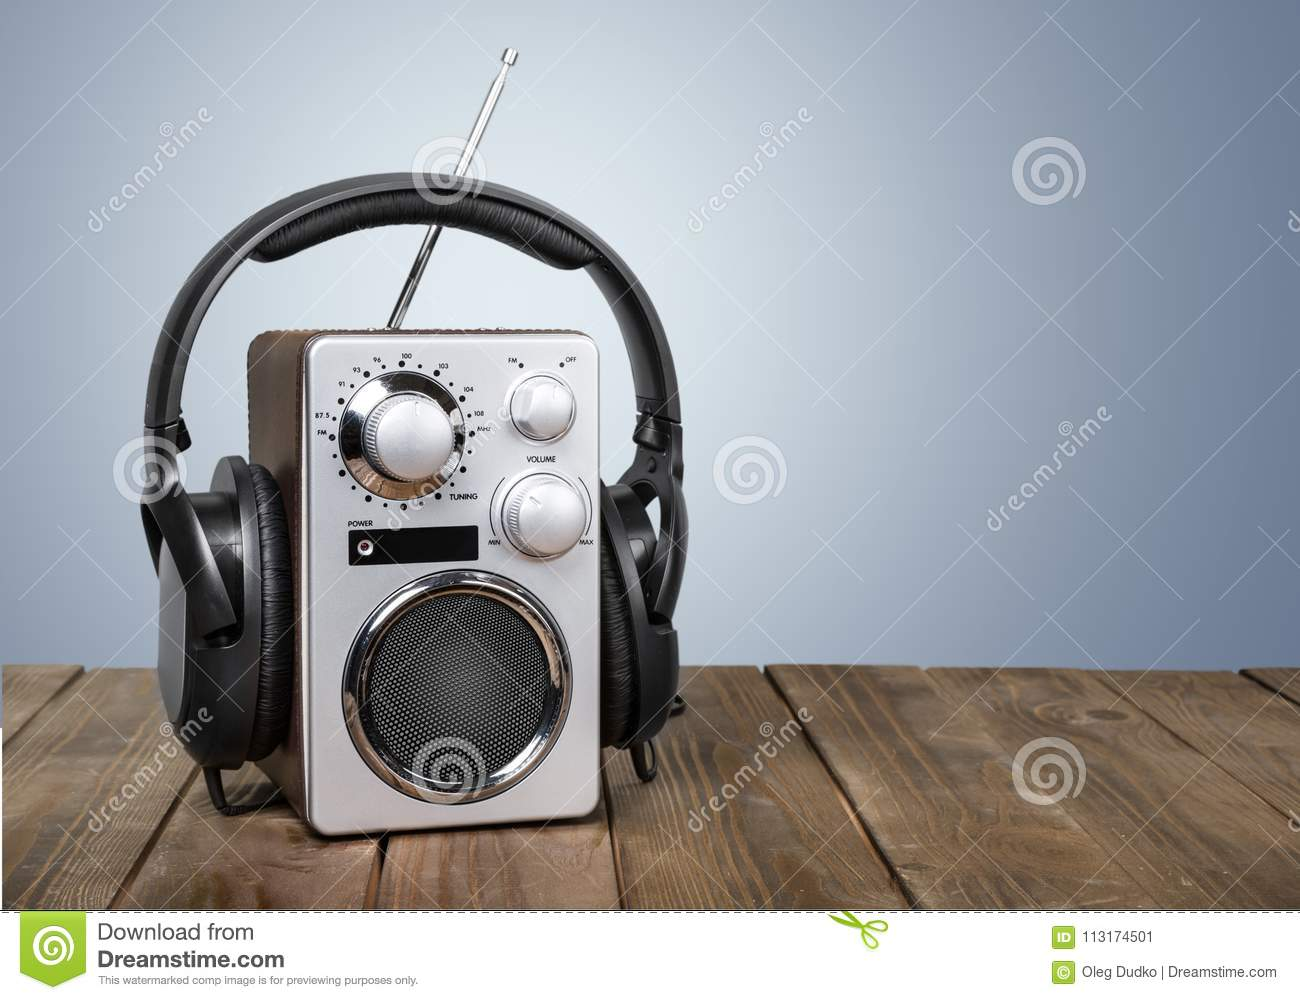 Old radio photography broadcasting wallpaper photo table